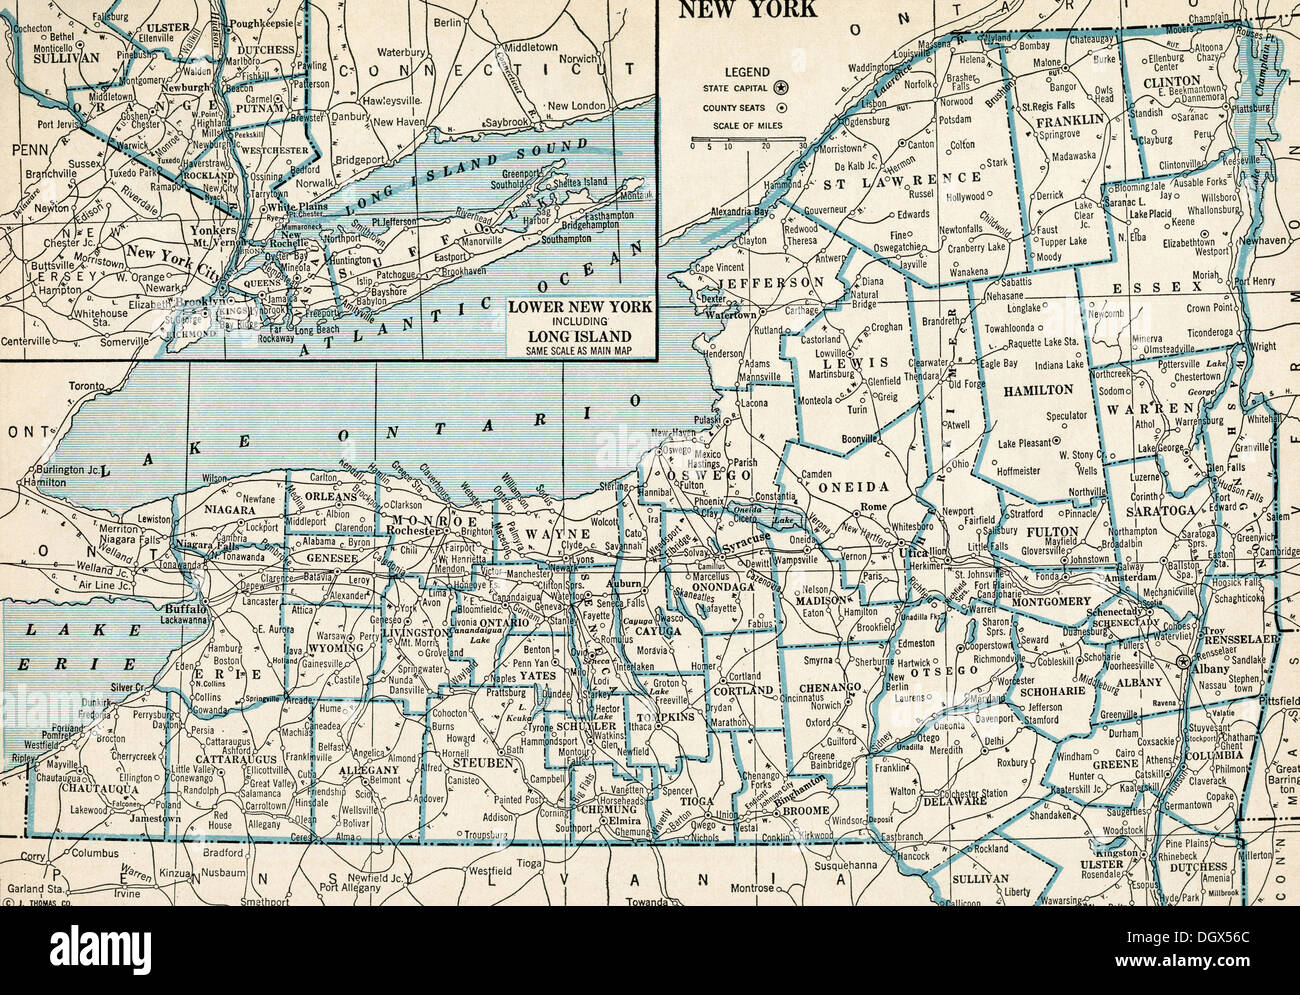 Old Map Of New York.Old Map Of New York State 1930 S Stock Photo 62040452 Alamy